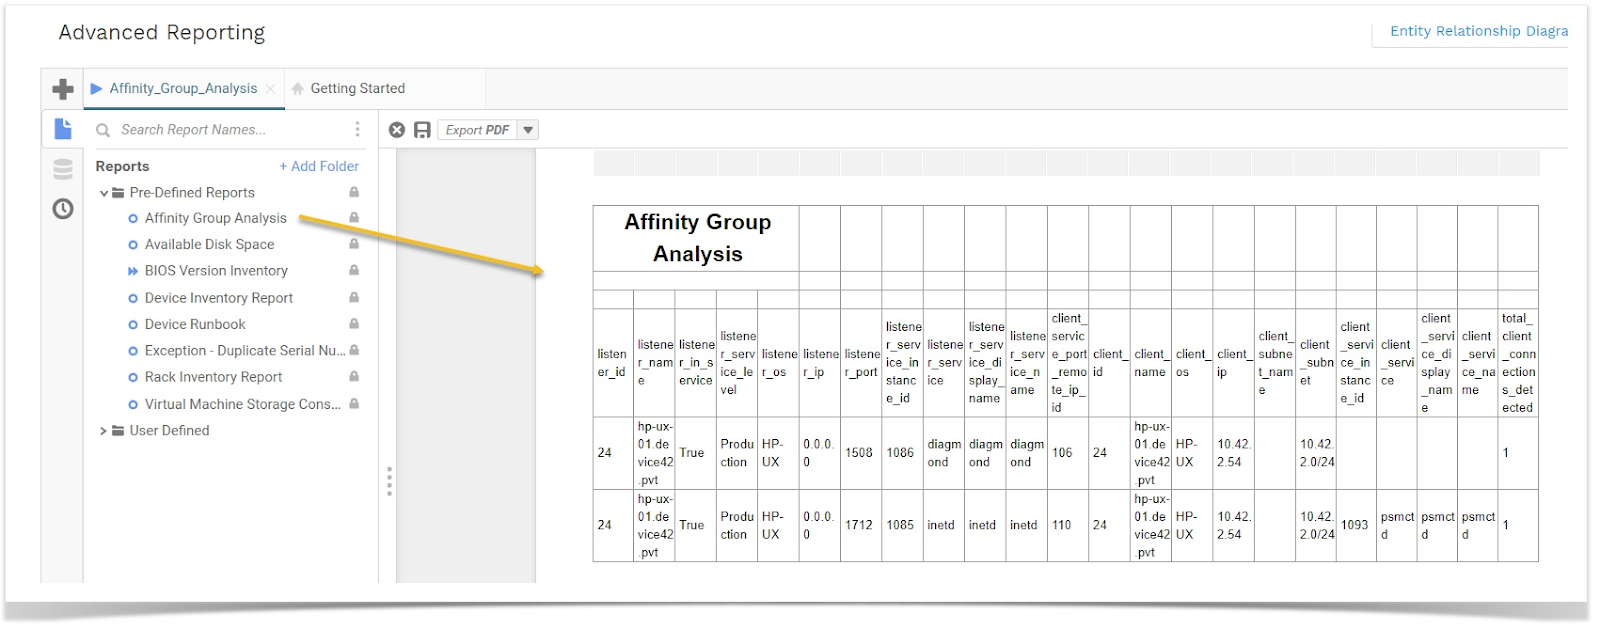 Run Affinity Group Analysis Report from Advanced Reporting